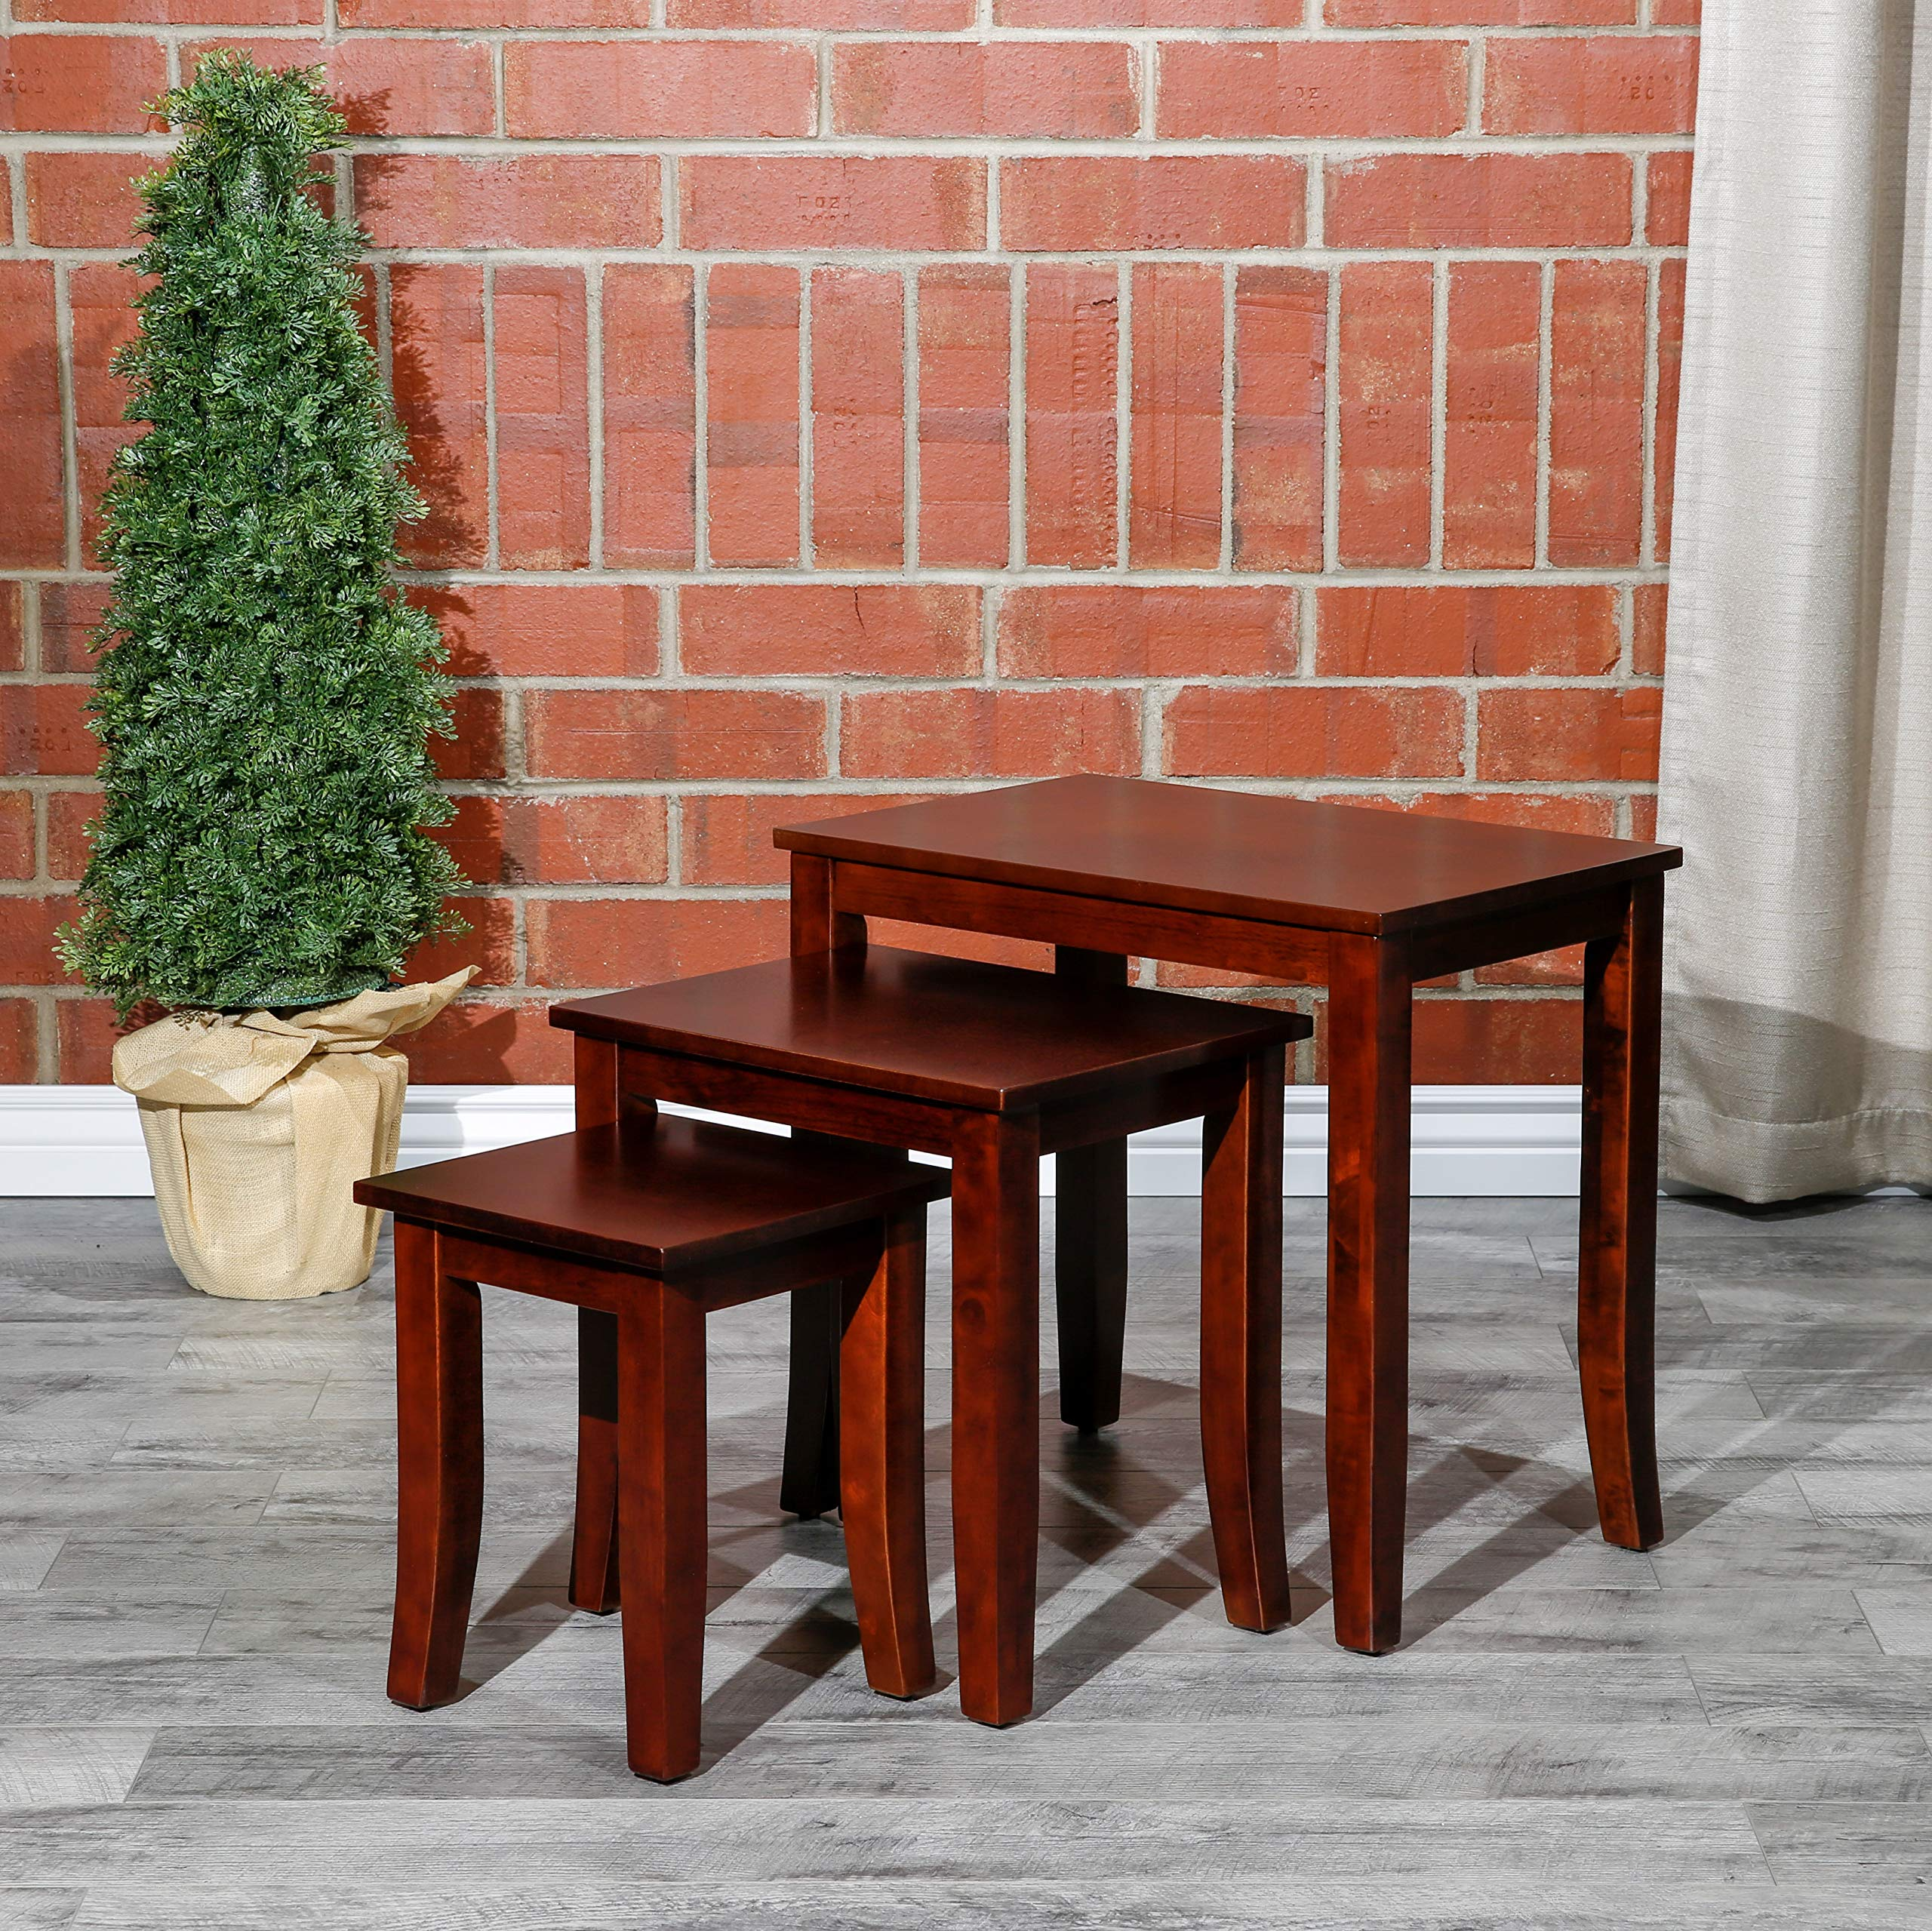 Avon 3-Piece Nesting Tables DTY Indoor Living Furniture Collection - Cherry